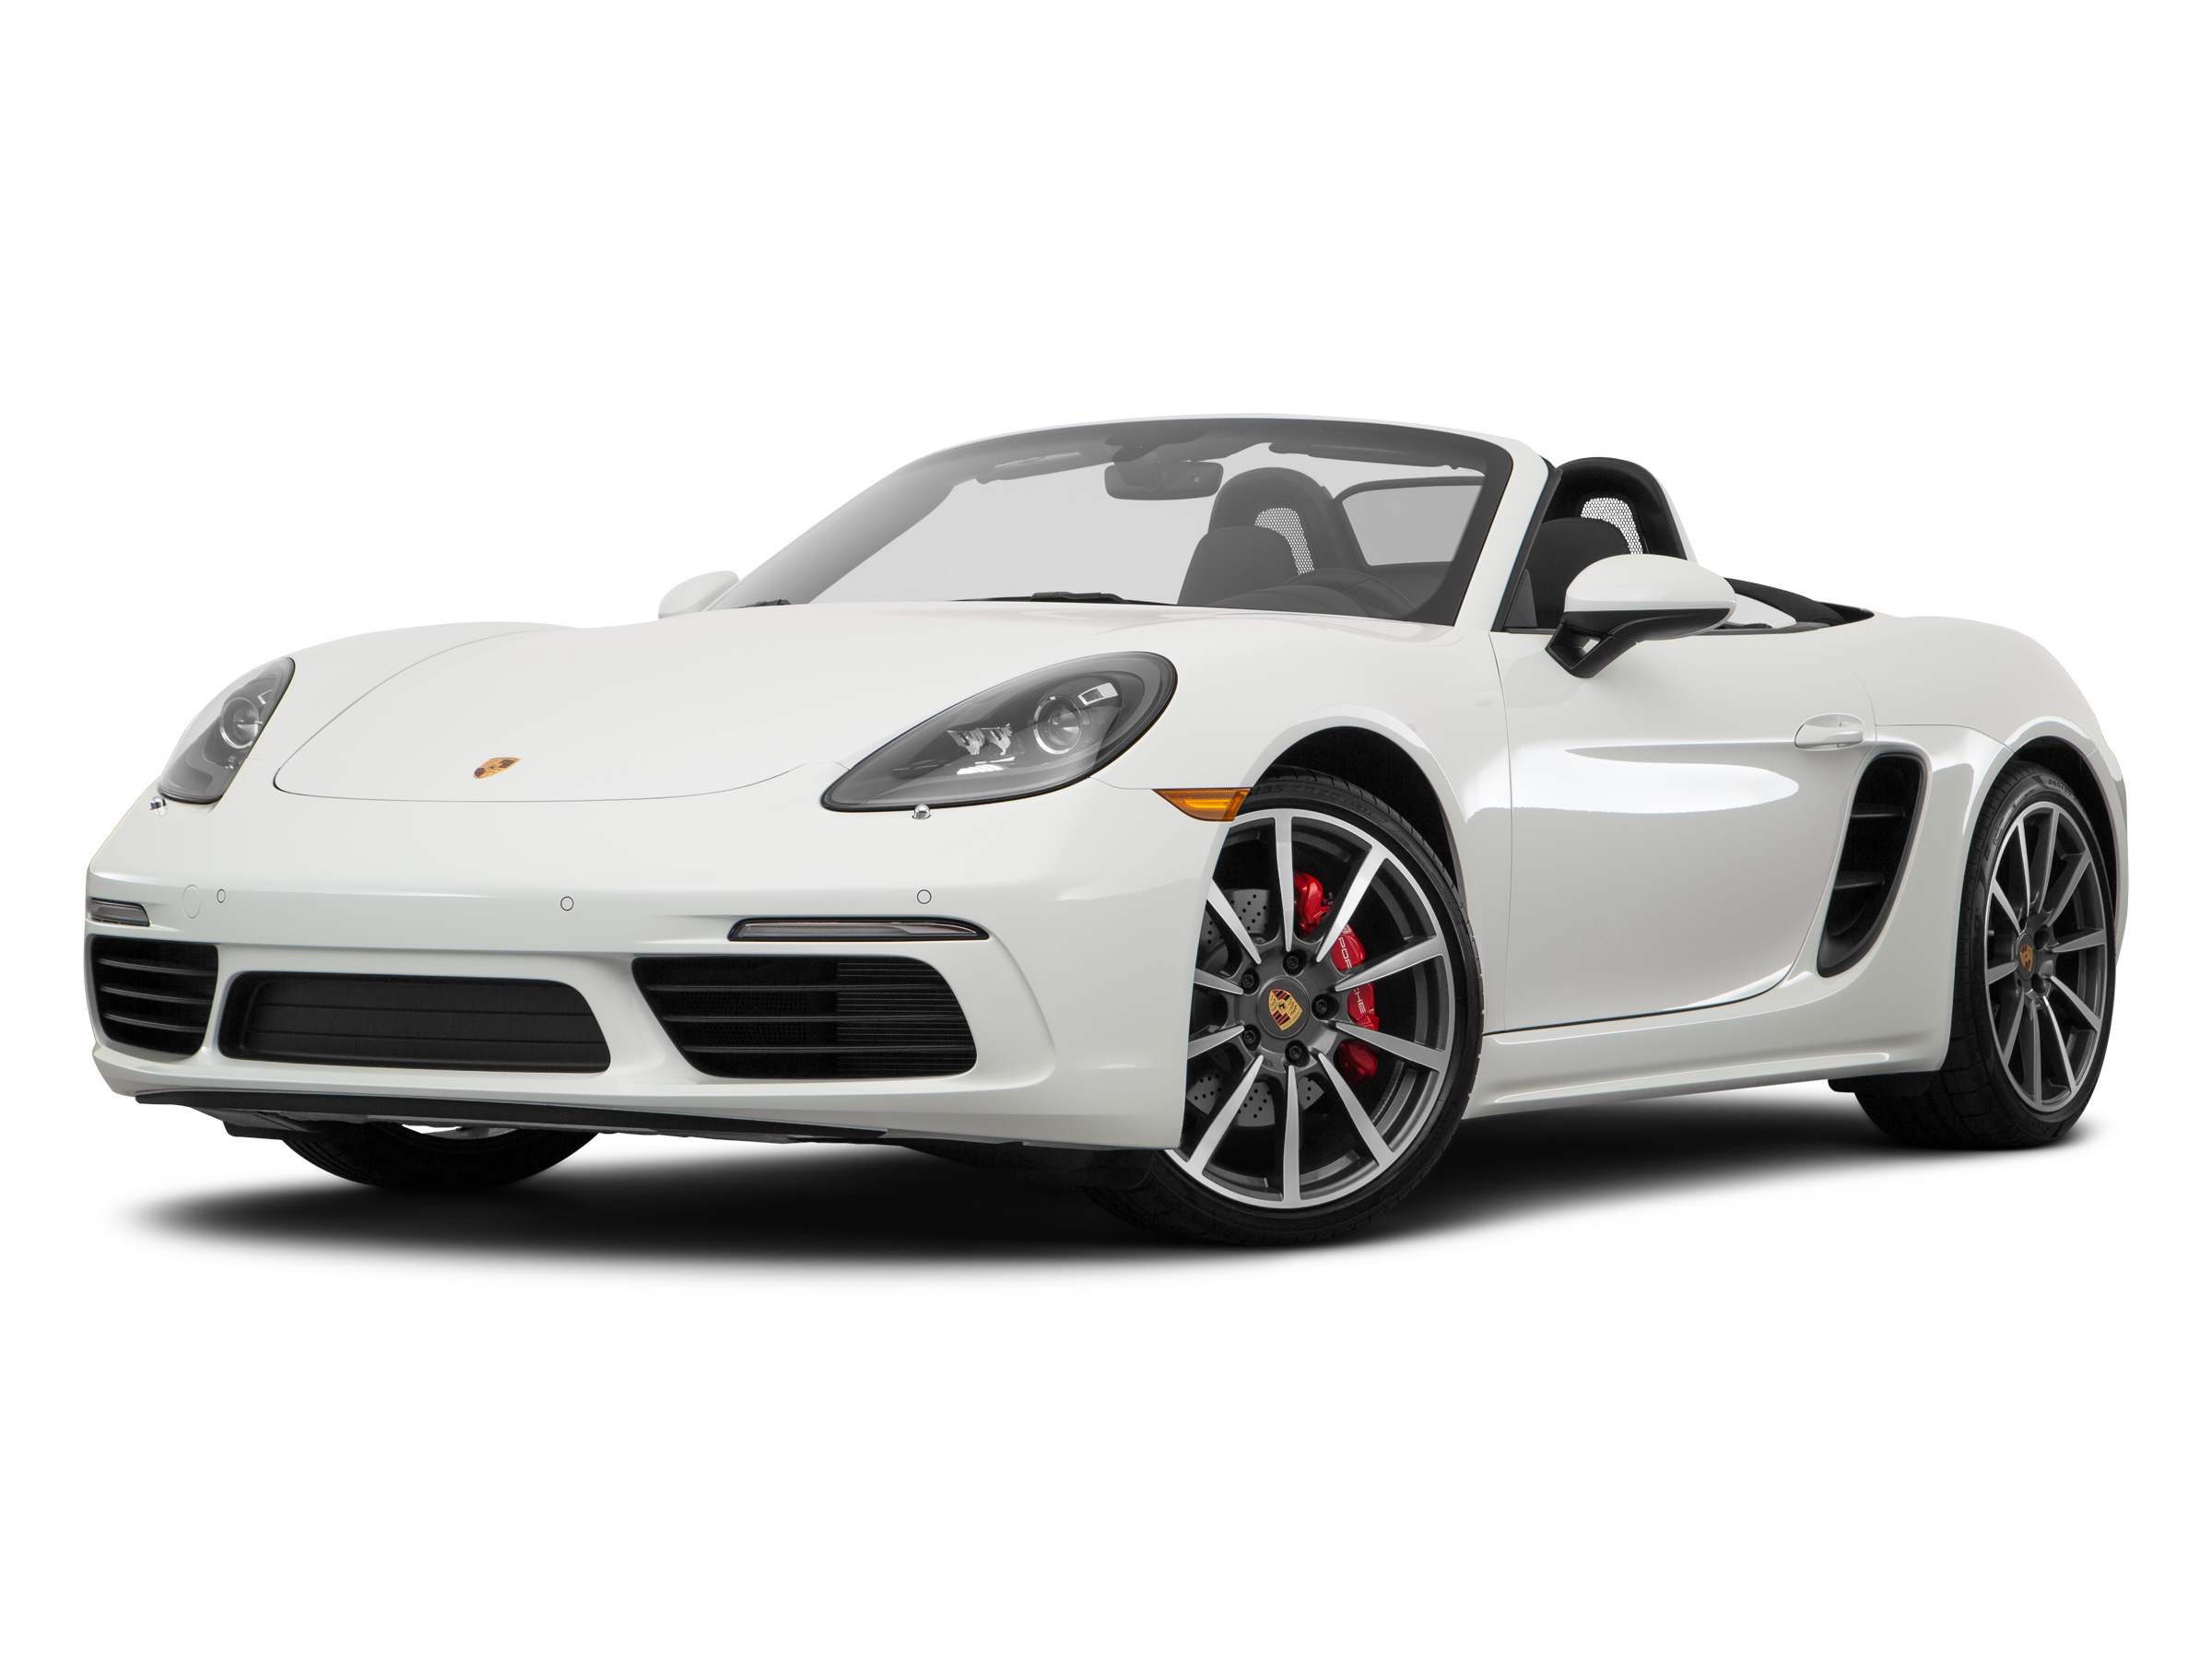 2020 718 Boxster